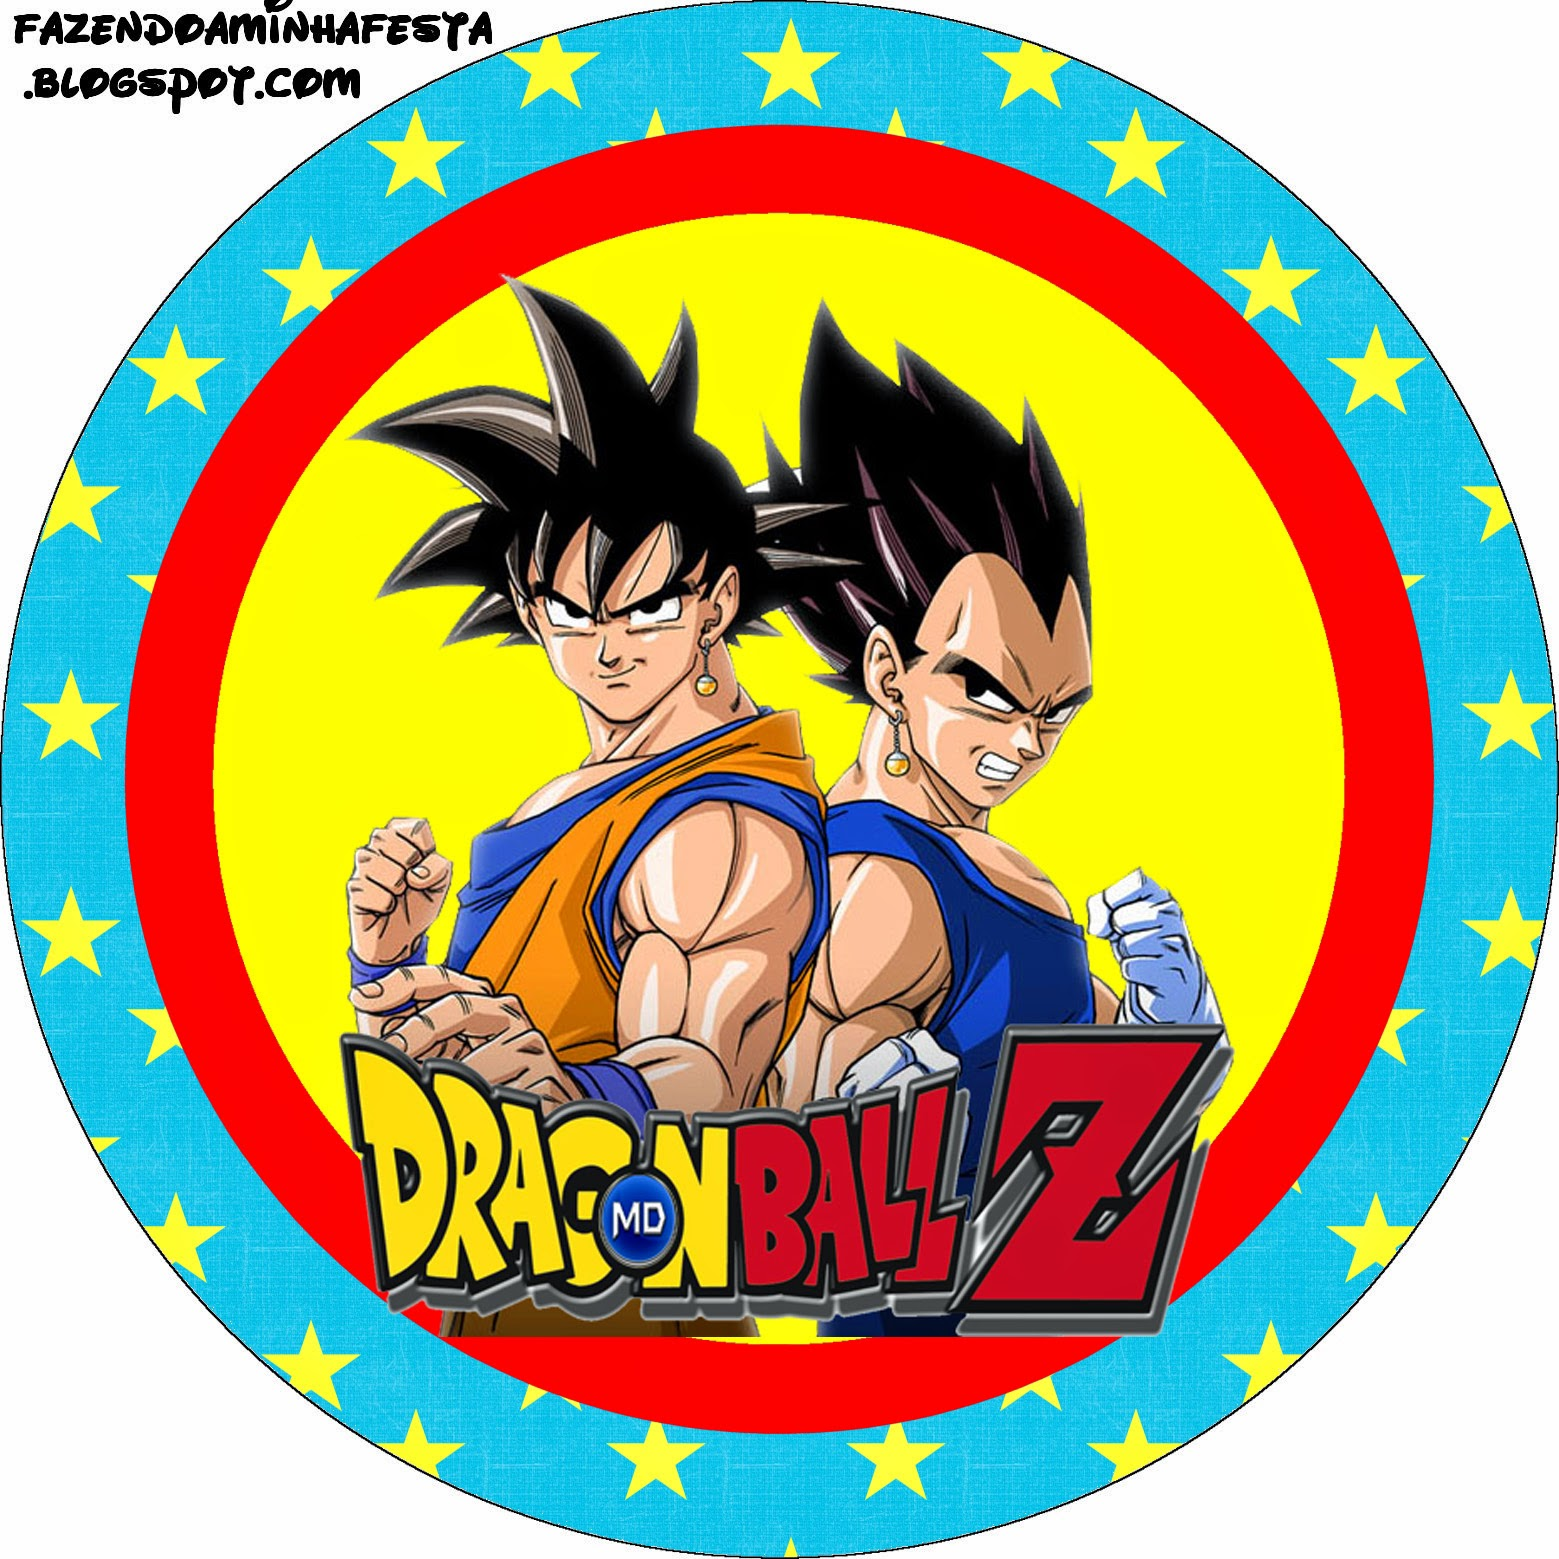 1000+ images about Dragon Ball on Pinterest.